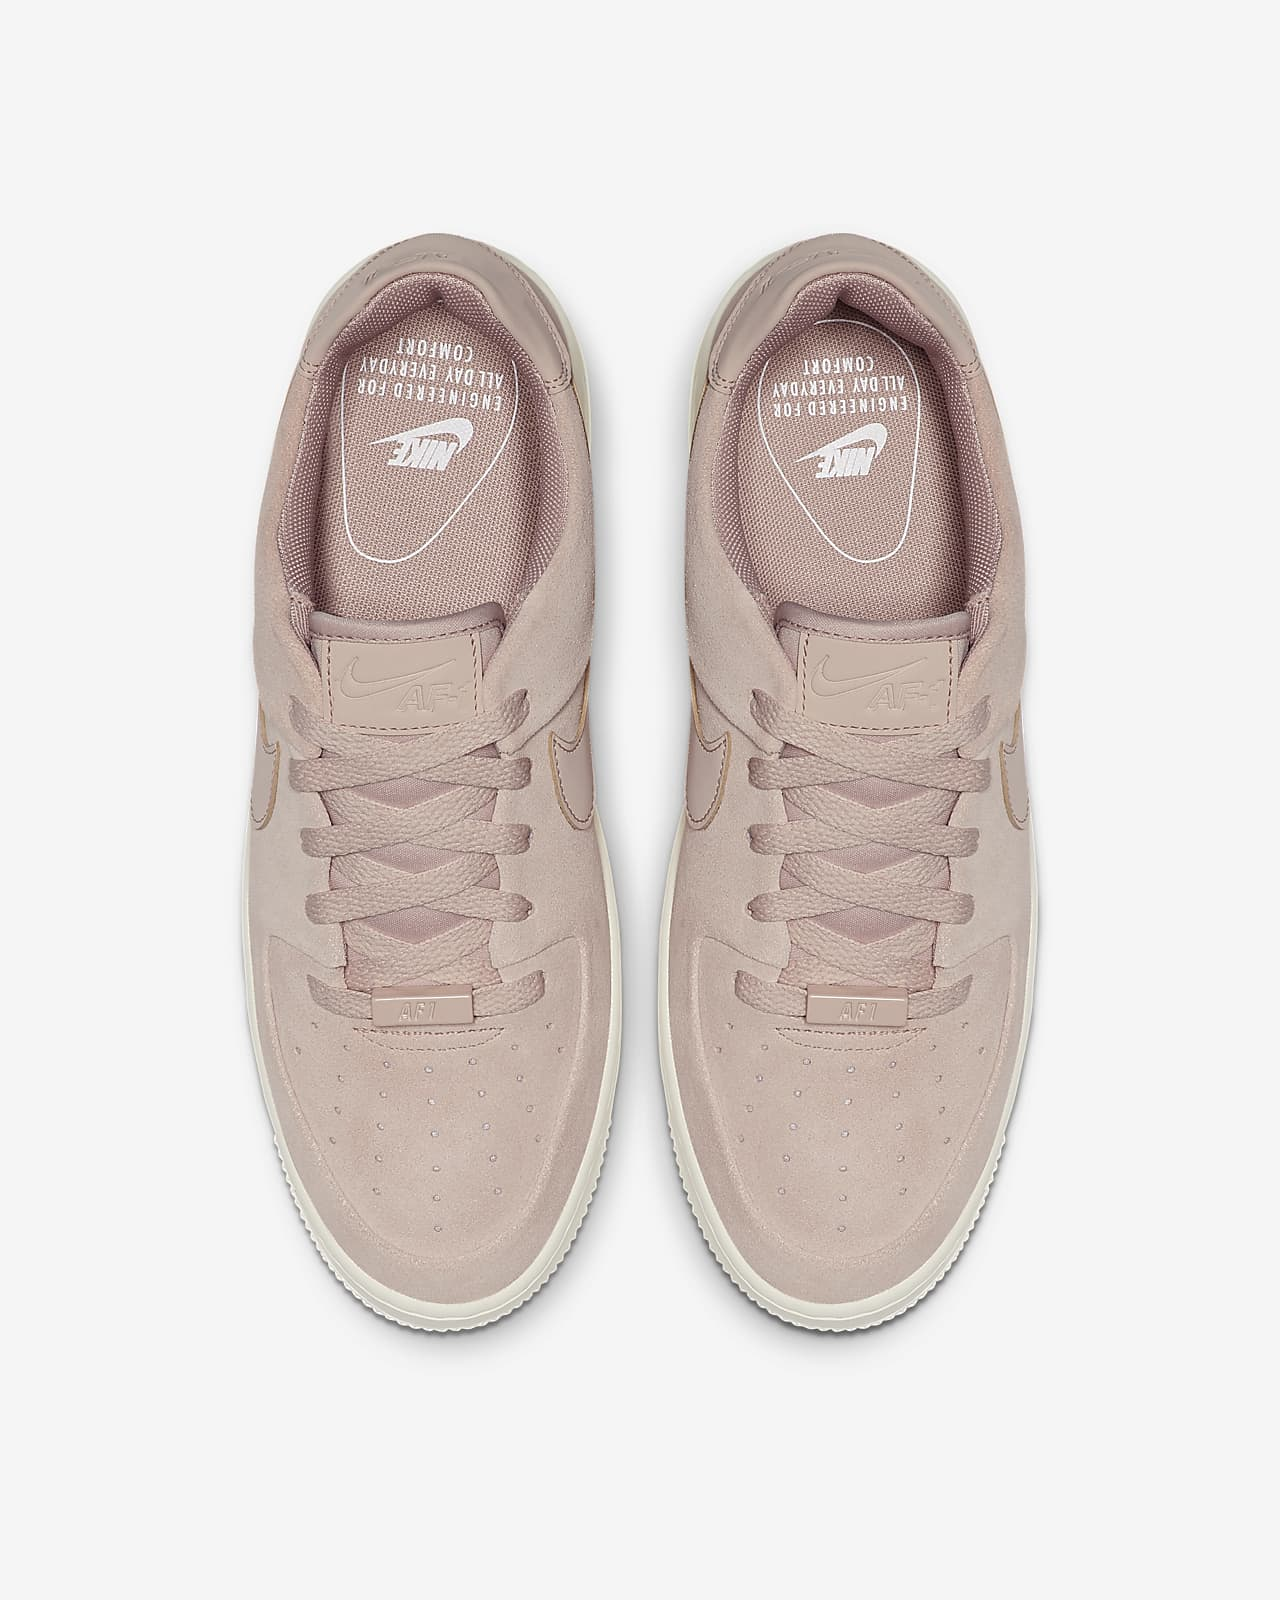 Nike Air Force 1 Sage Low Women S Shoe Nike Ca As of 2015, the sneaker was said to be released in. nike air force 1 sage low women s shoe